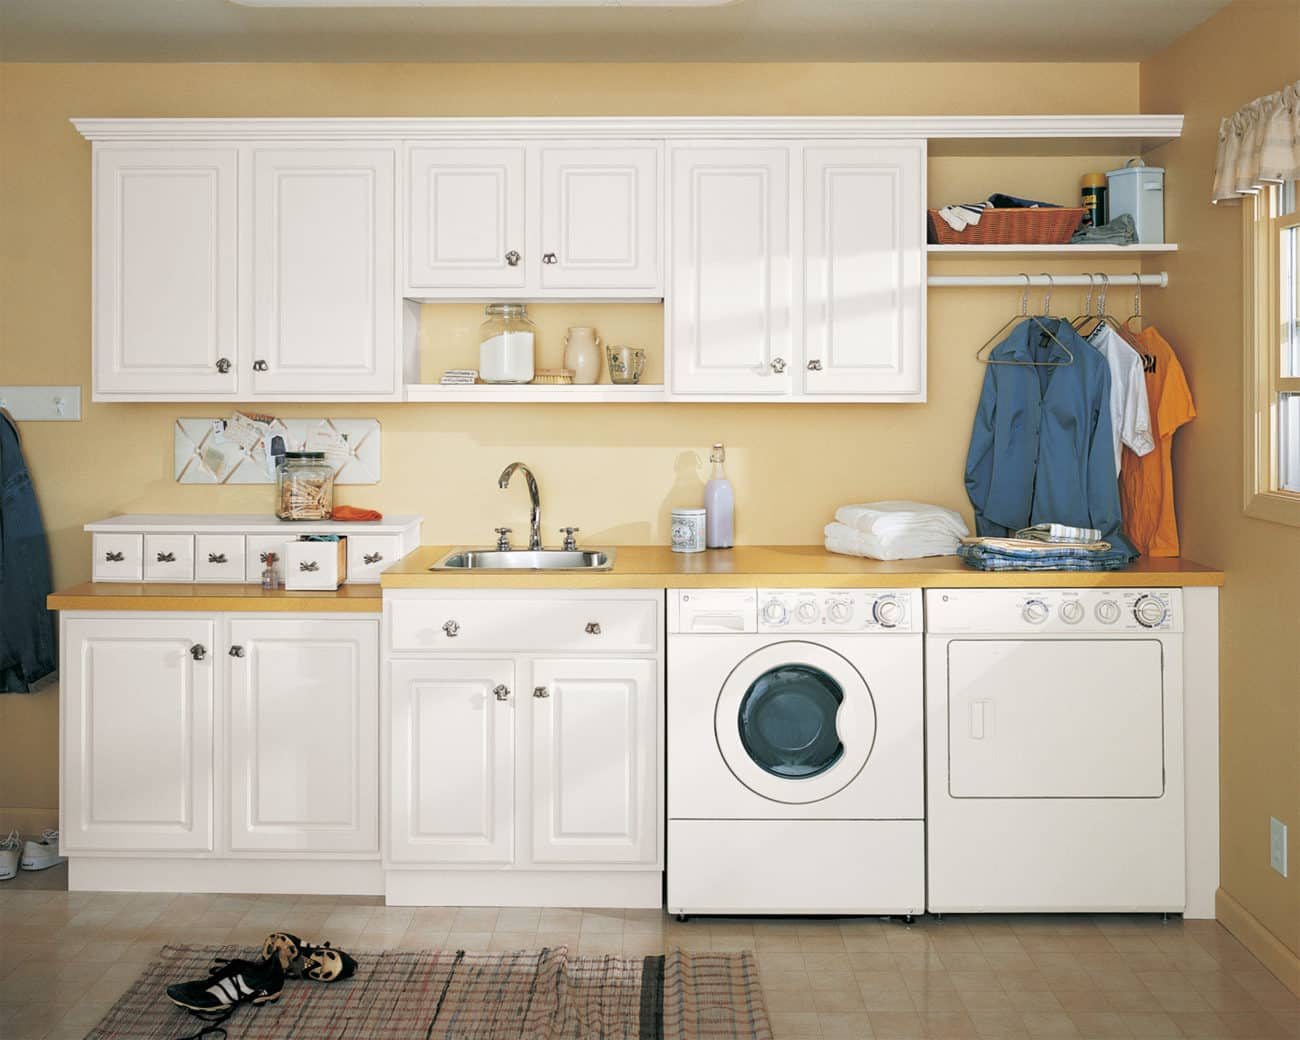 Laundry Room Cabinet Ideas laundry room storage ideas - | aesops gables (505) 275-1804